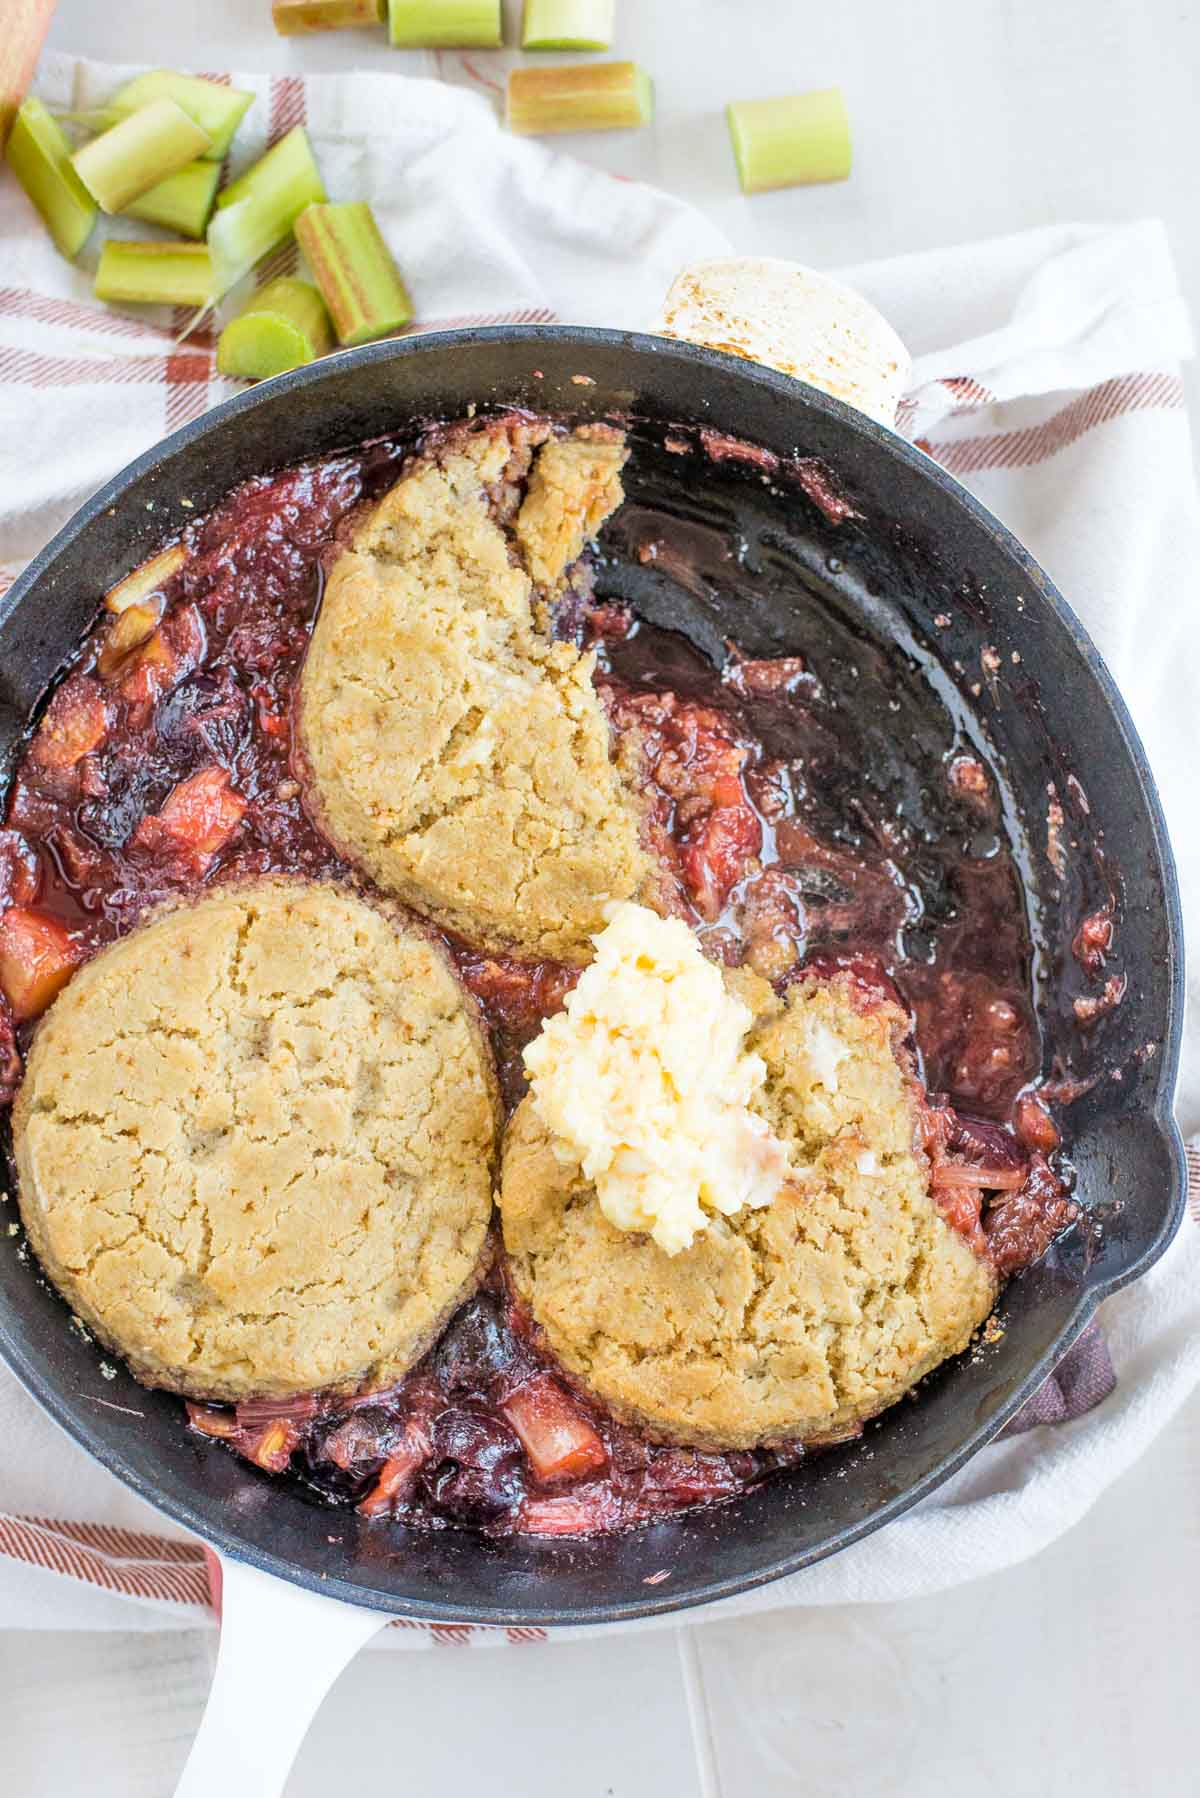 Looking for something delicious? Try this, it's the best cherry rhubarb cobbler with honey buttered biscuits. Seriously it's that good.